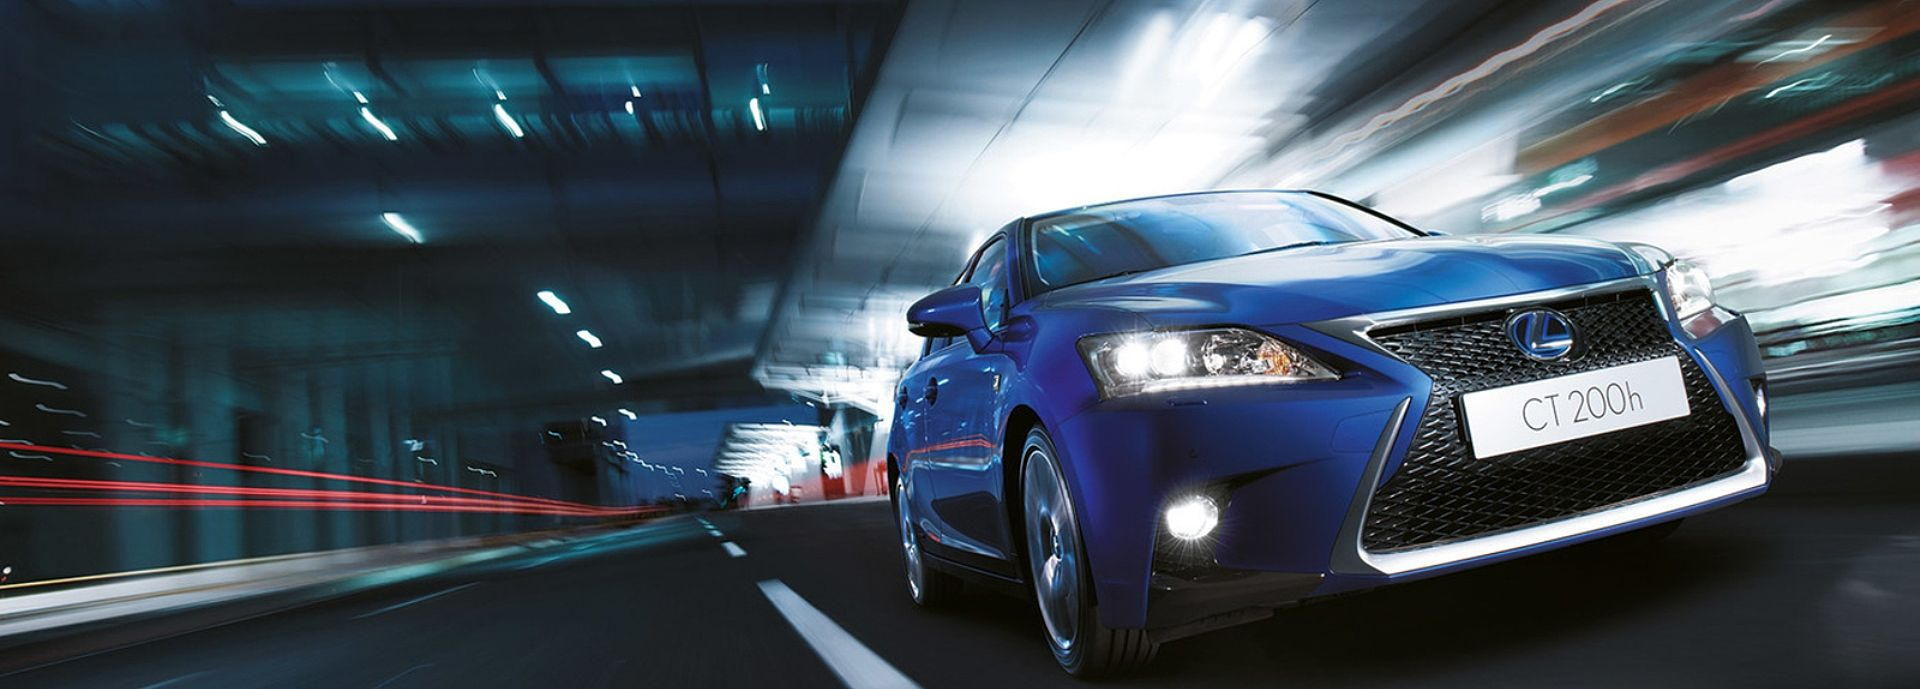 pre on offers certified gx event preowned used lexus profile gs owned front all car cars financing guides buying